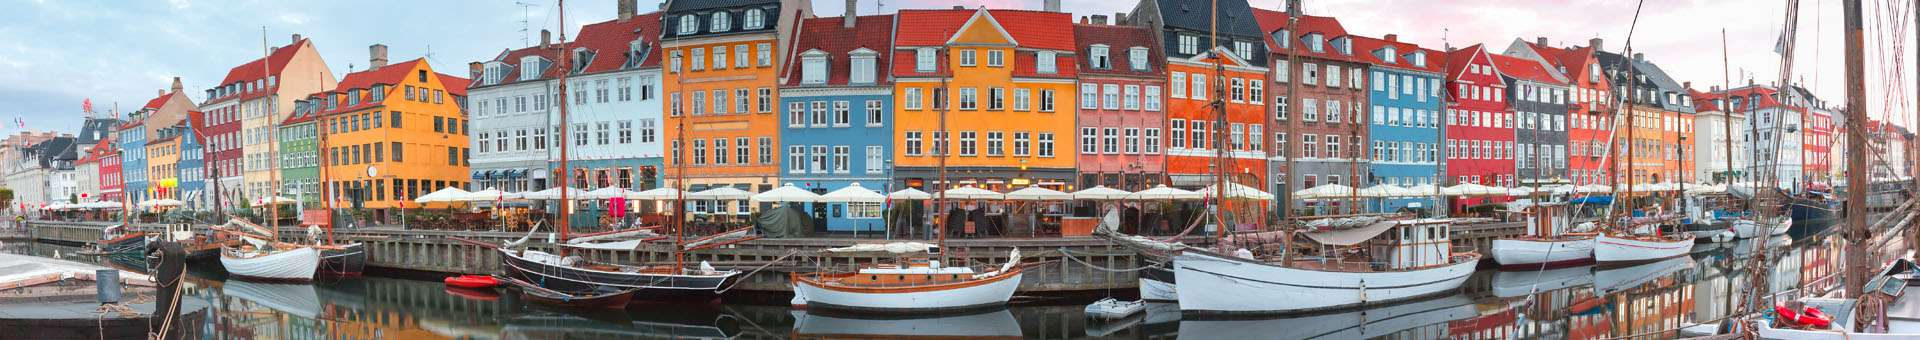 Search Whois information of domain names in Denmark